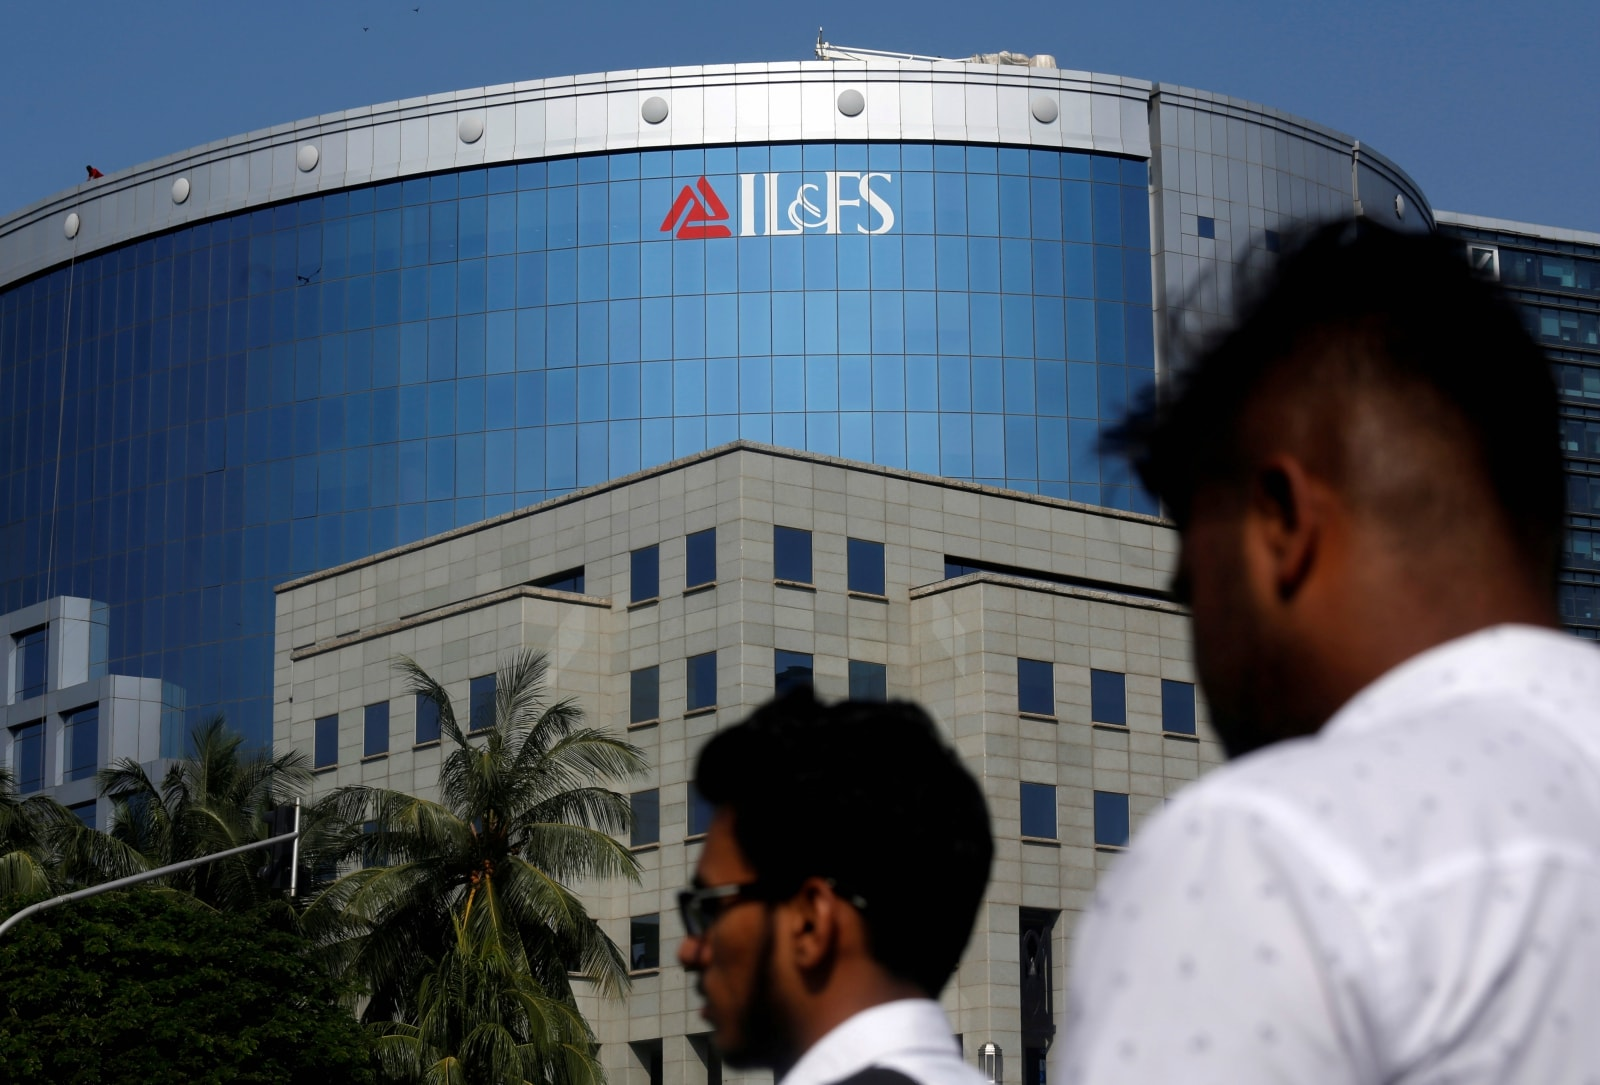 IL&FS: The National Company Law Appellate Tribunal Monday directed debt-ridden IL&FS to submit information over investment made by pension and provident funds in its four group firms, and also sought details of financial liabilities of those entities. (Image: Reuters)